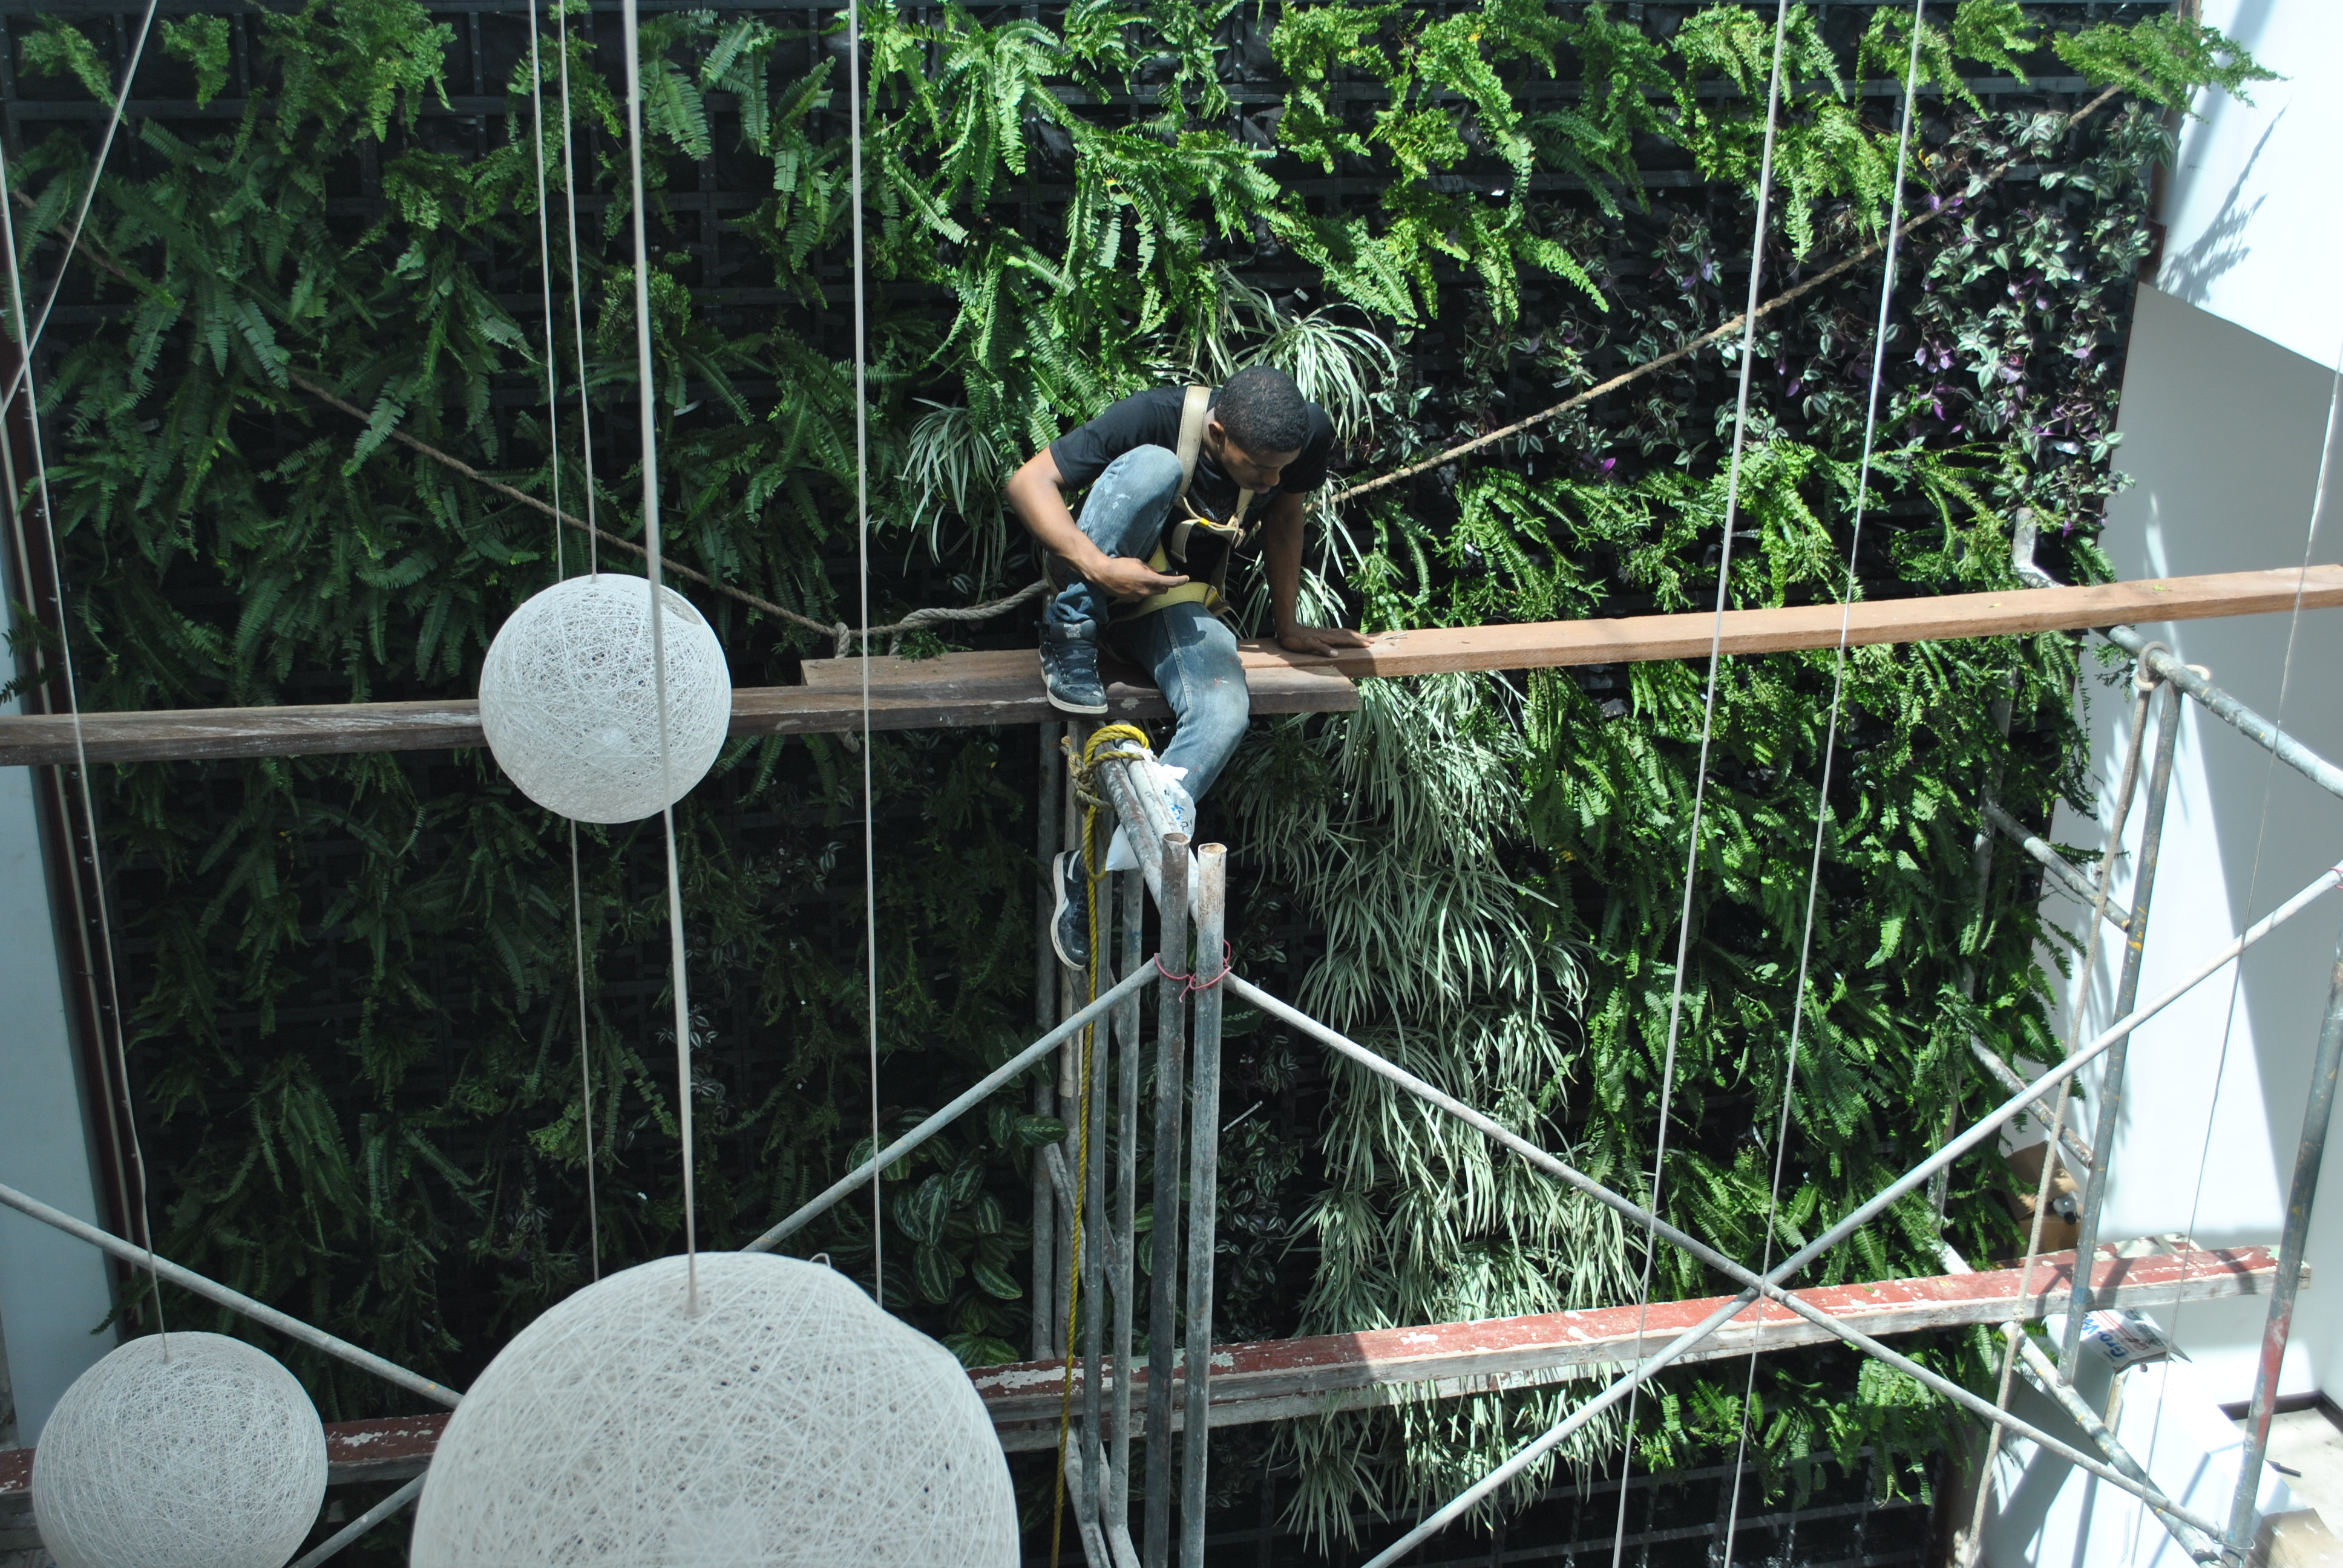 Installation of Hotel Lobby Green Wall in Panama, Atlantis Gro-Wall® Vertical Garden System